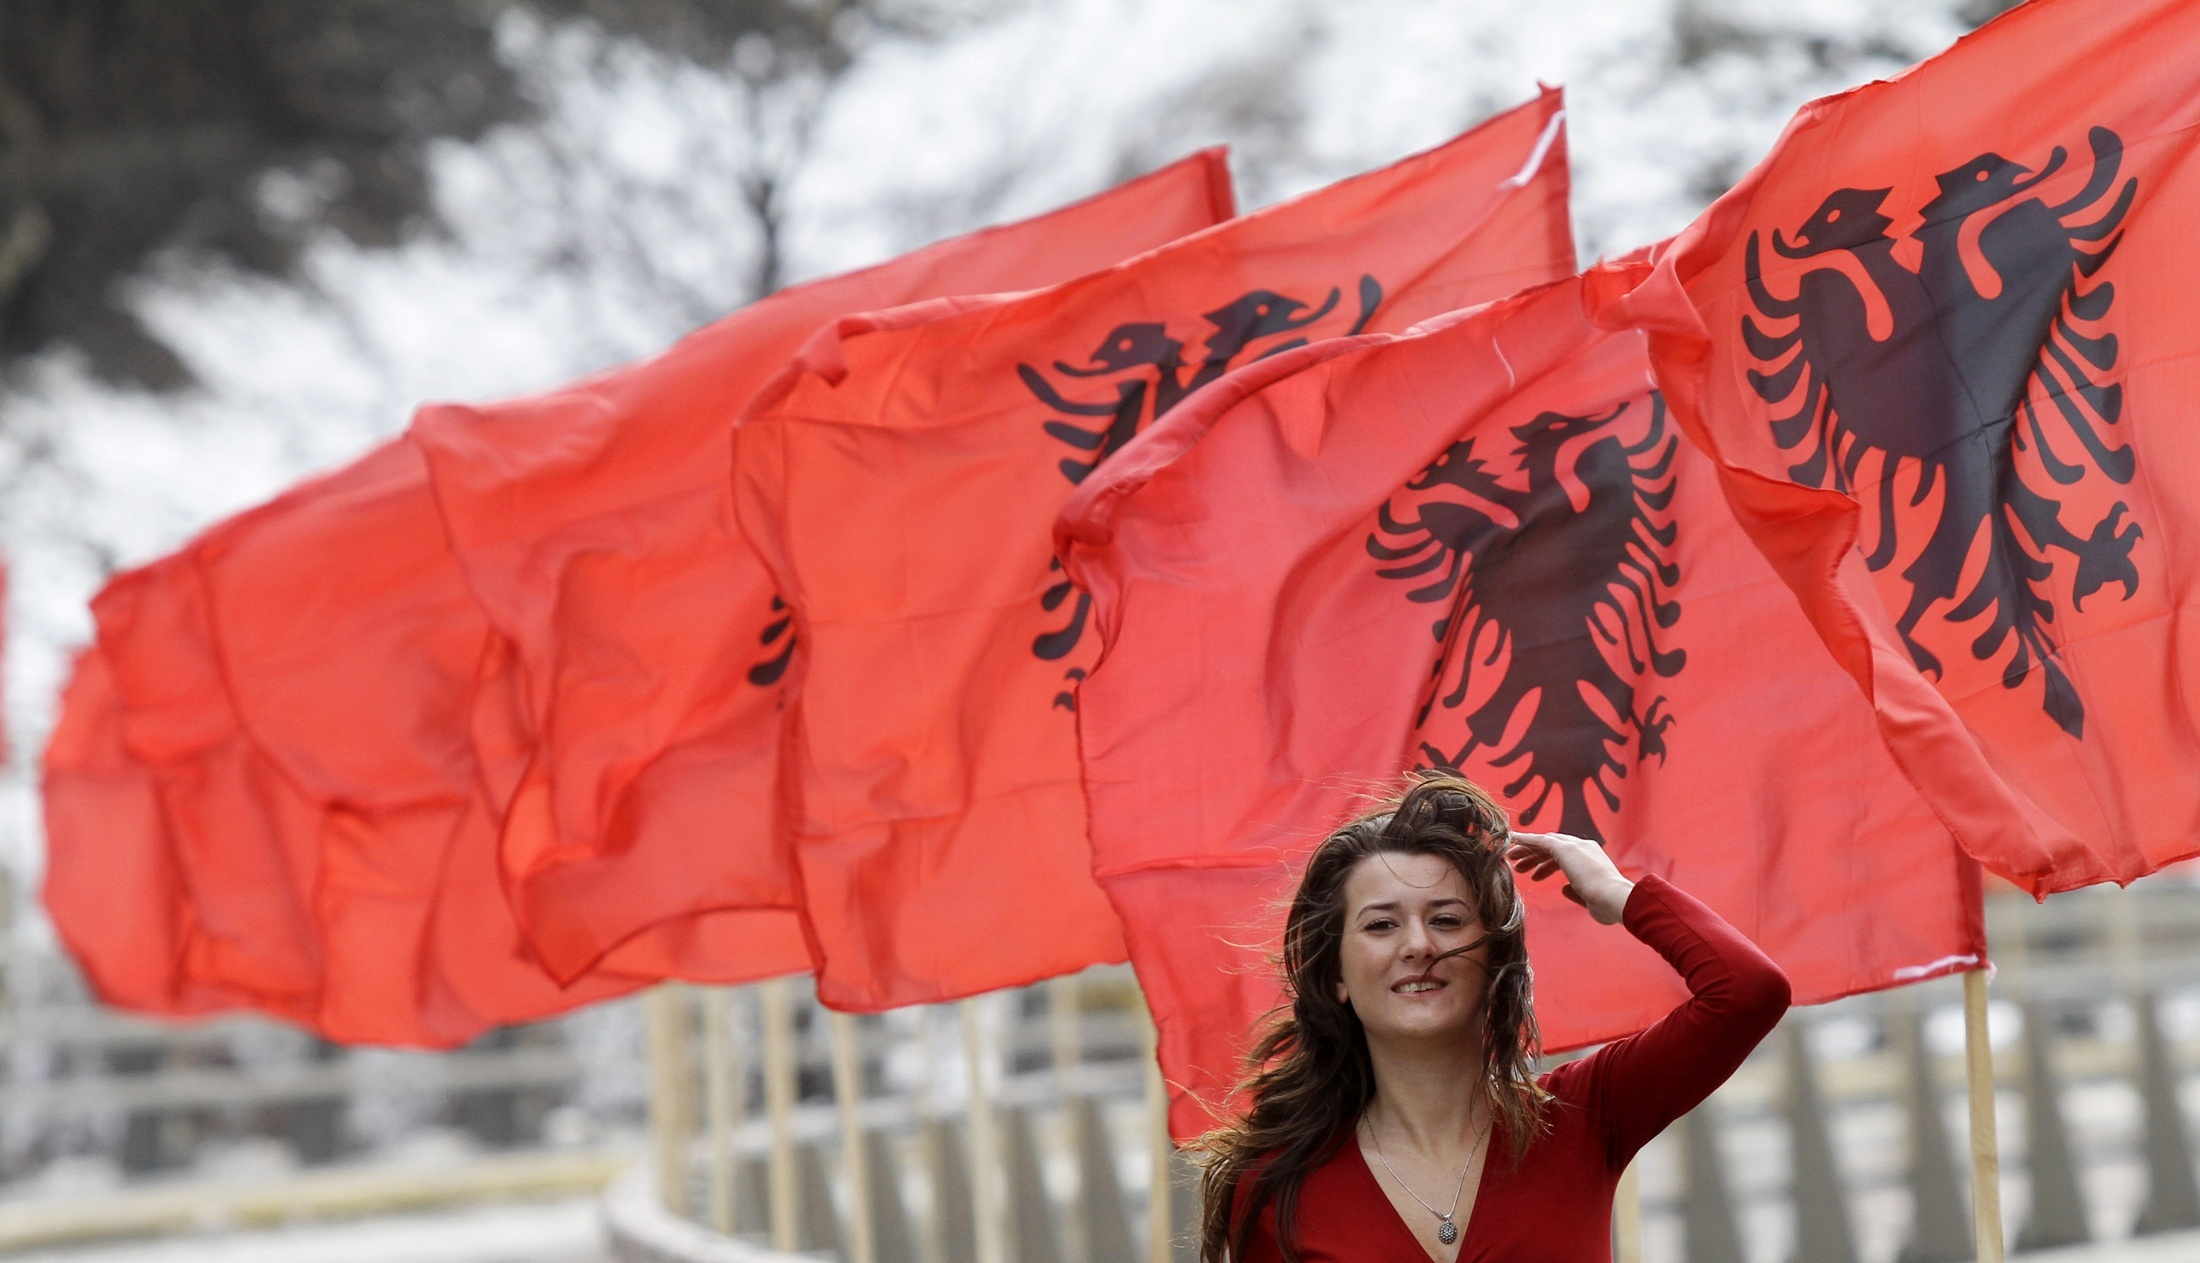 Kosovo moment of truth - uncomfortable questions may arise for Western politicians